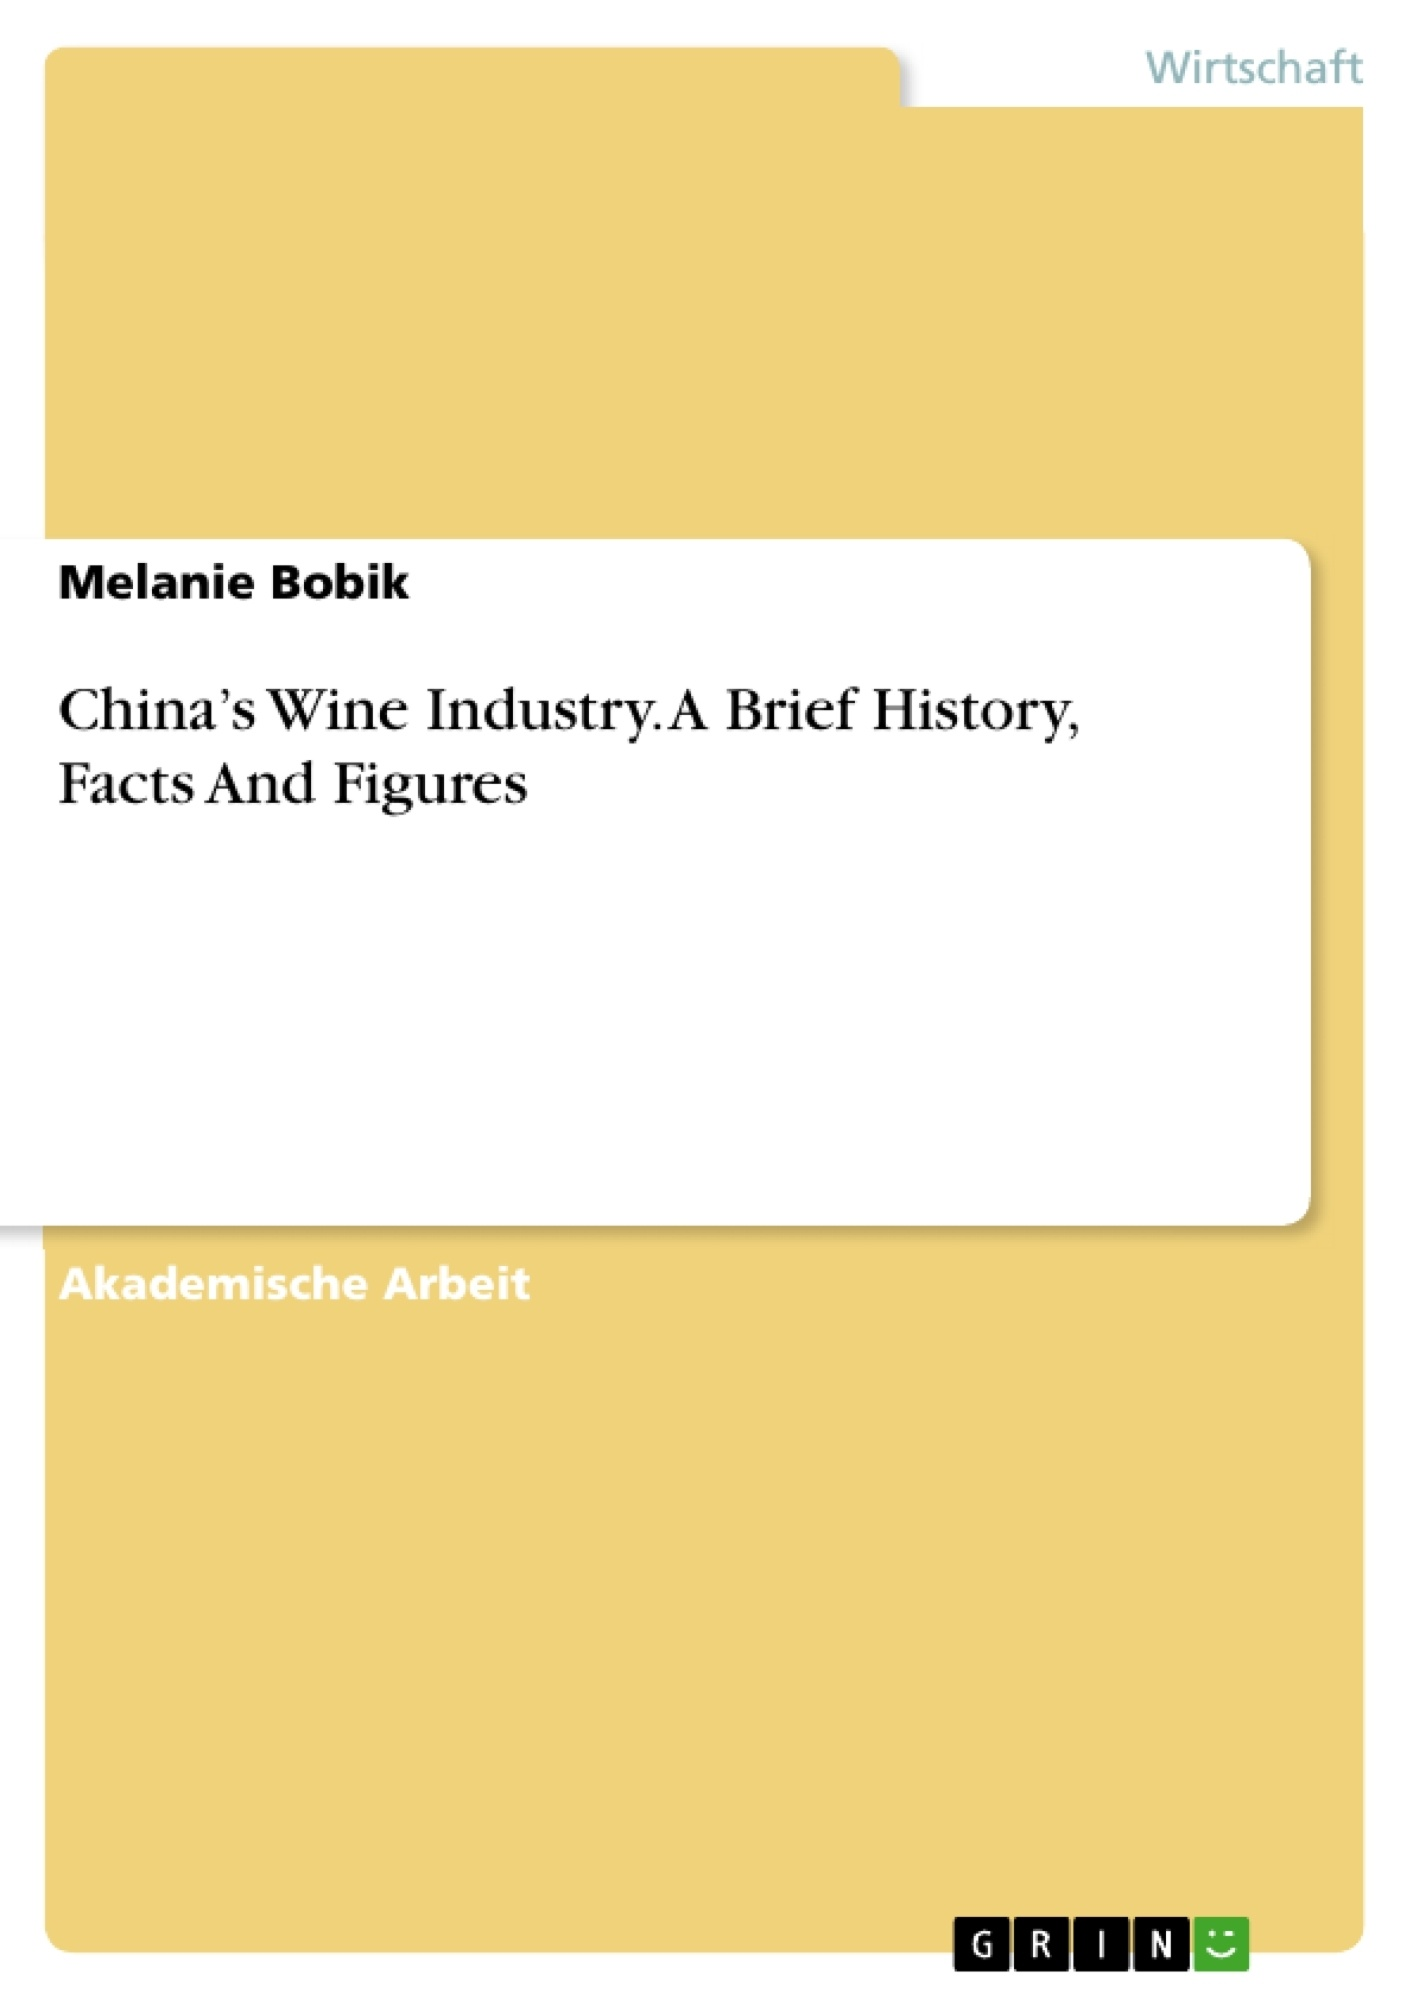 Titel: China's Wine Industry. A Brief History, Facts And Figures